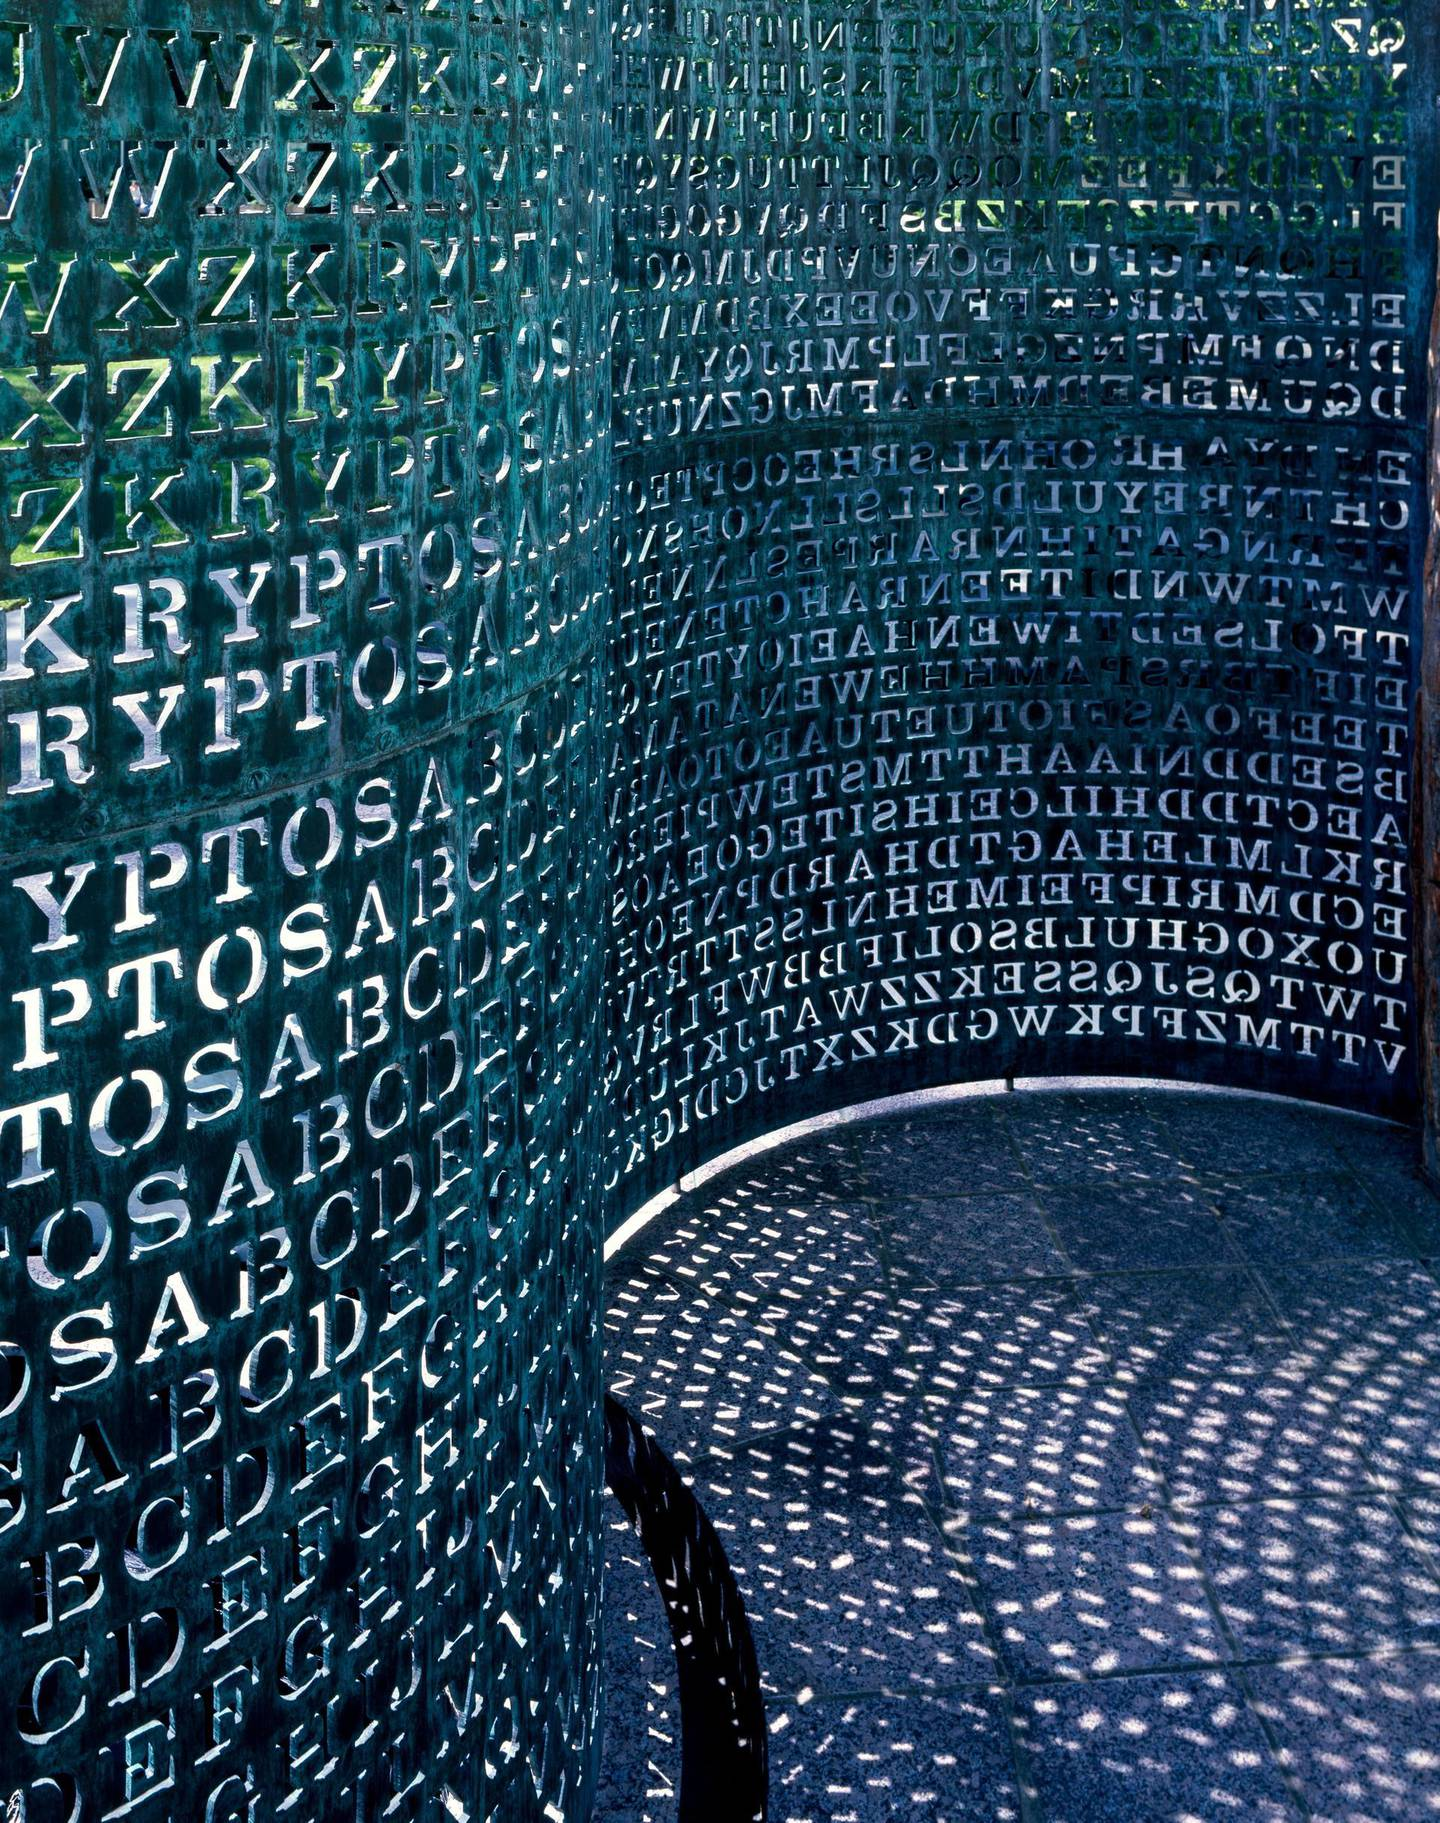 W7GFKF Art made of code named Kryptos sits on the grounds of the C.I.A. Headquarters in Virginia